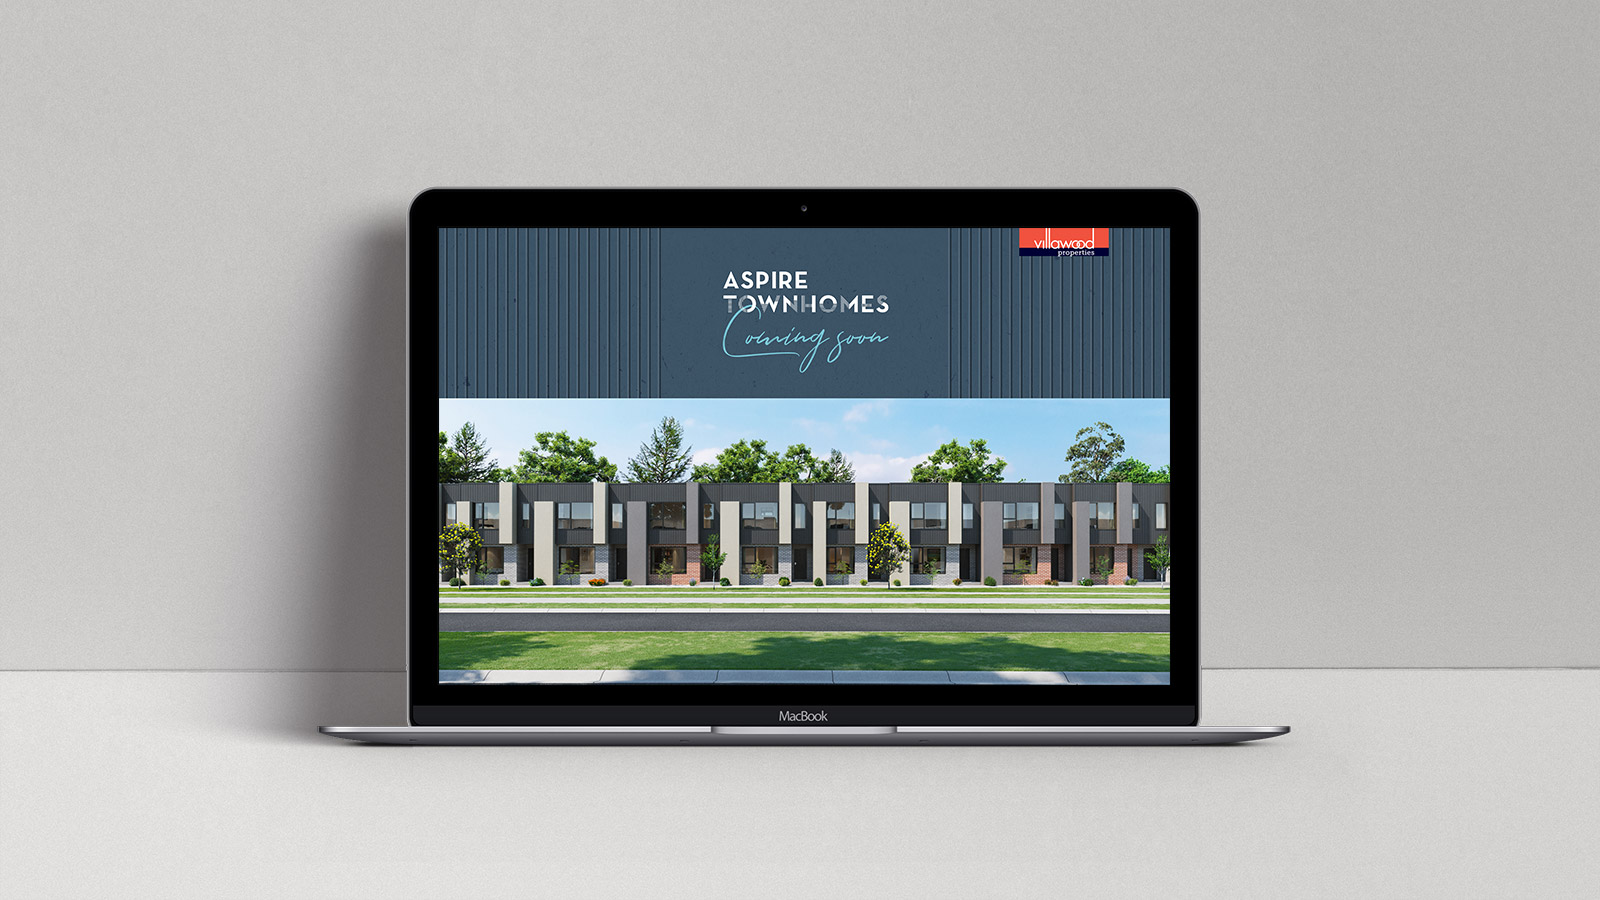 Aspire Townhomes website